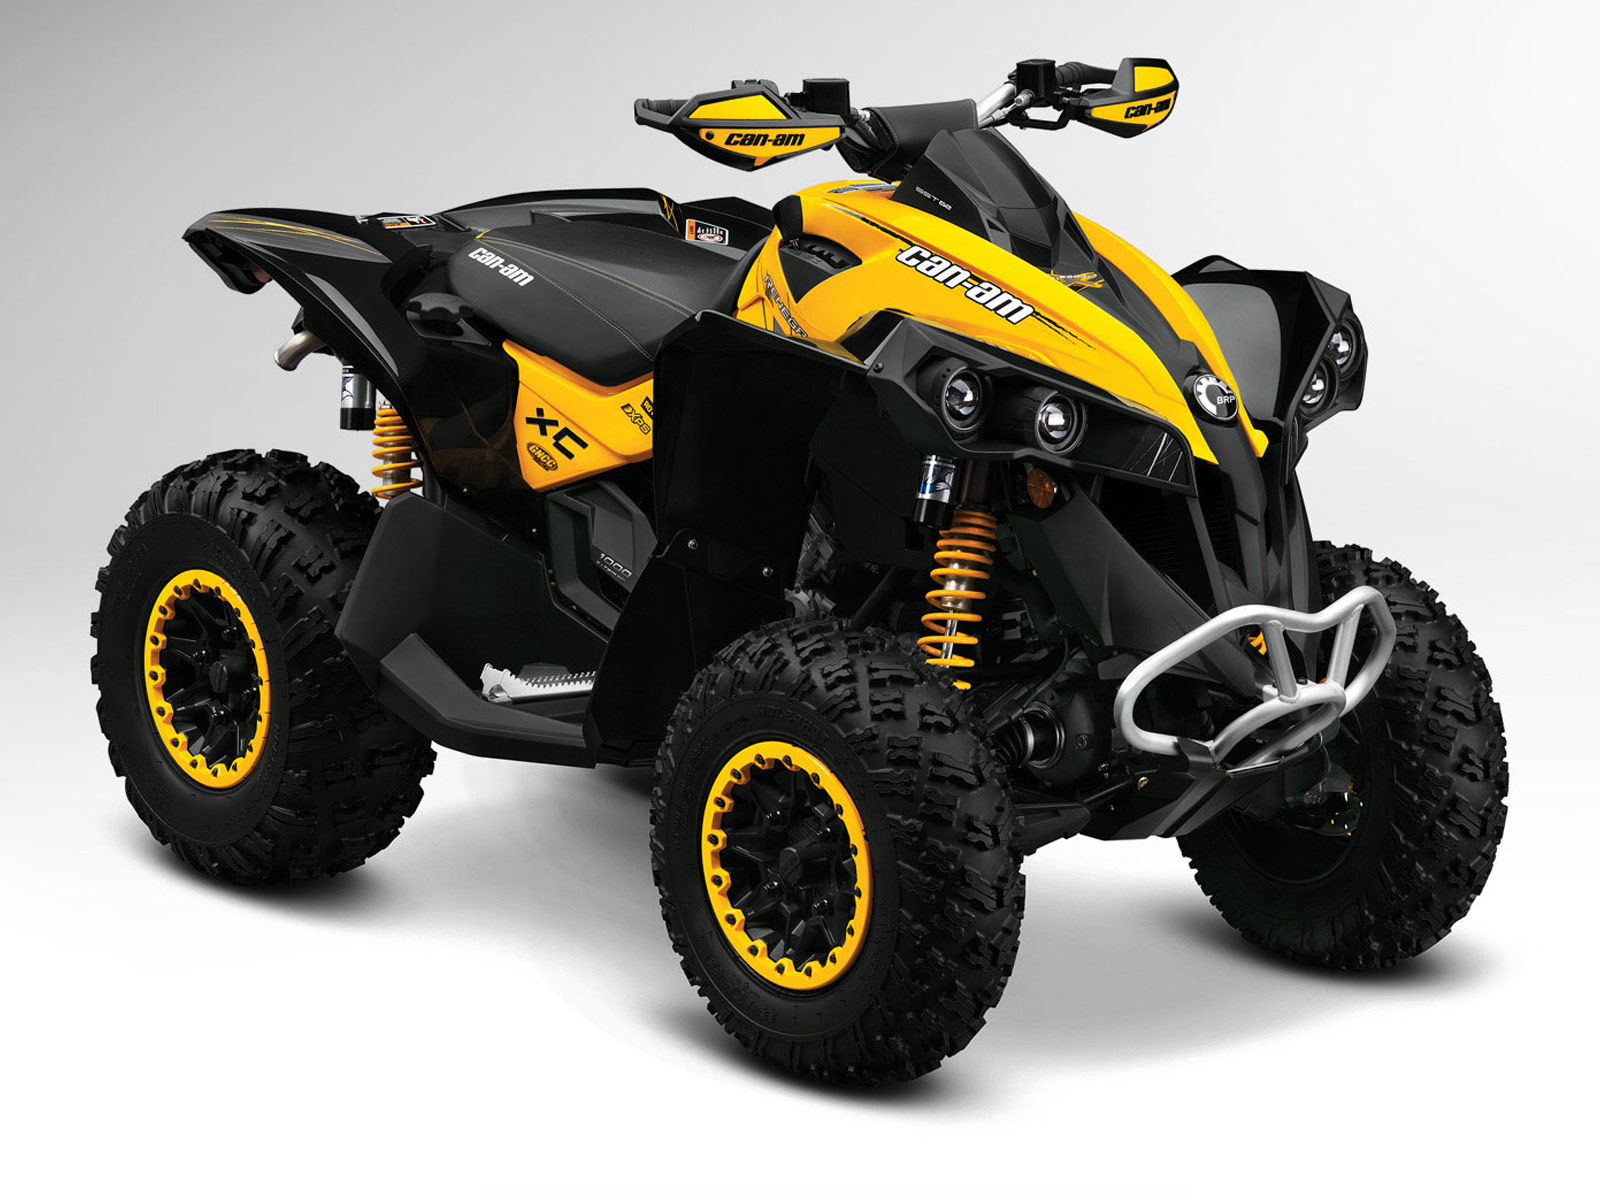 2012 canam outlander renegade 1000xxc atv insurance. Black Bedroom Furniture Sets. Home Design Ideas